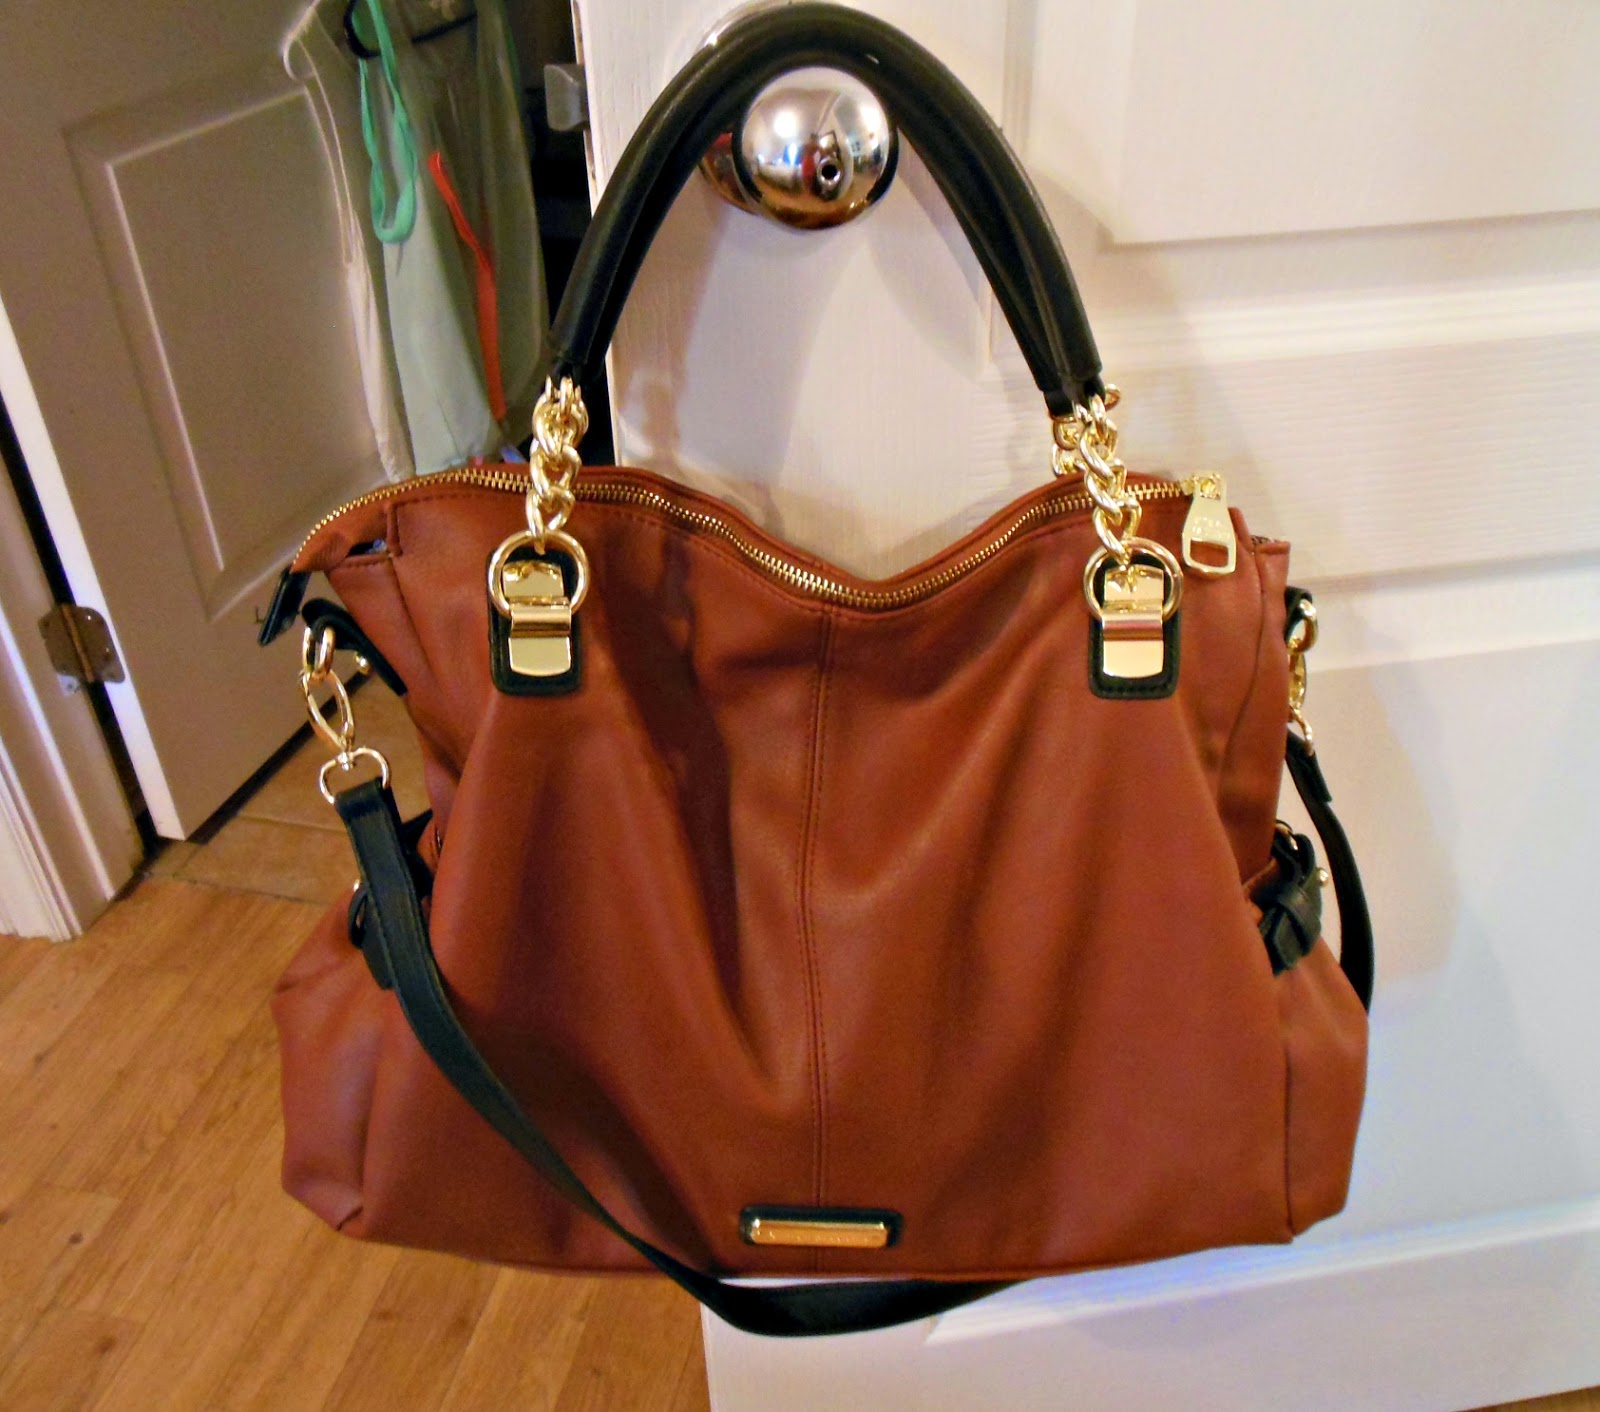 A Steve Madden Purse For Half Off Retail